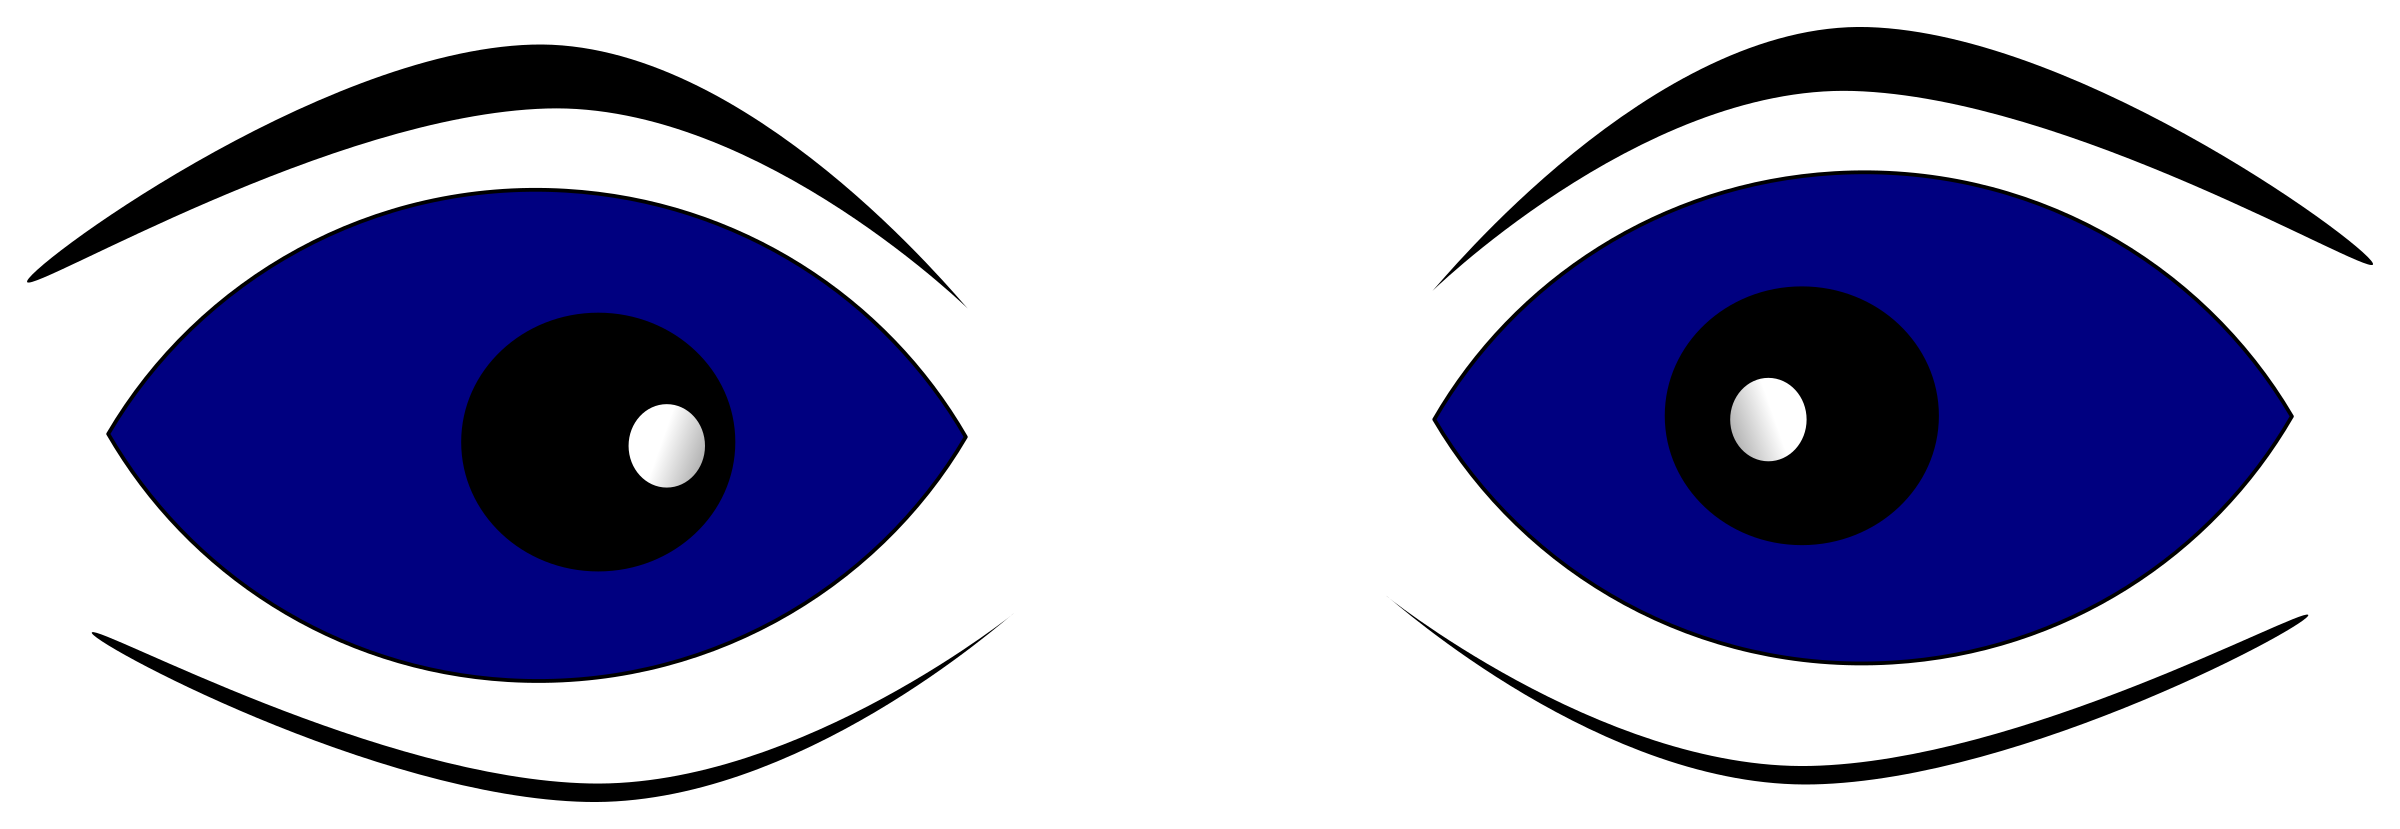 Eyes on the nose. Eyebrow clipart blue eye